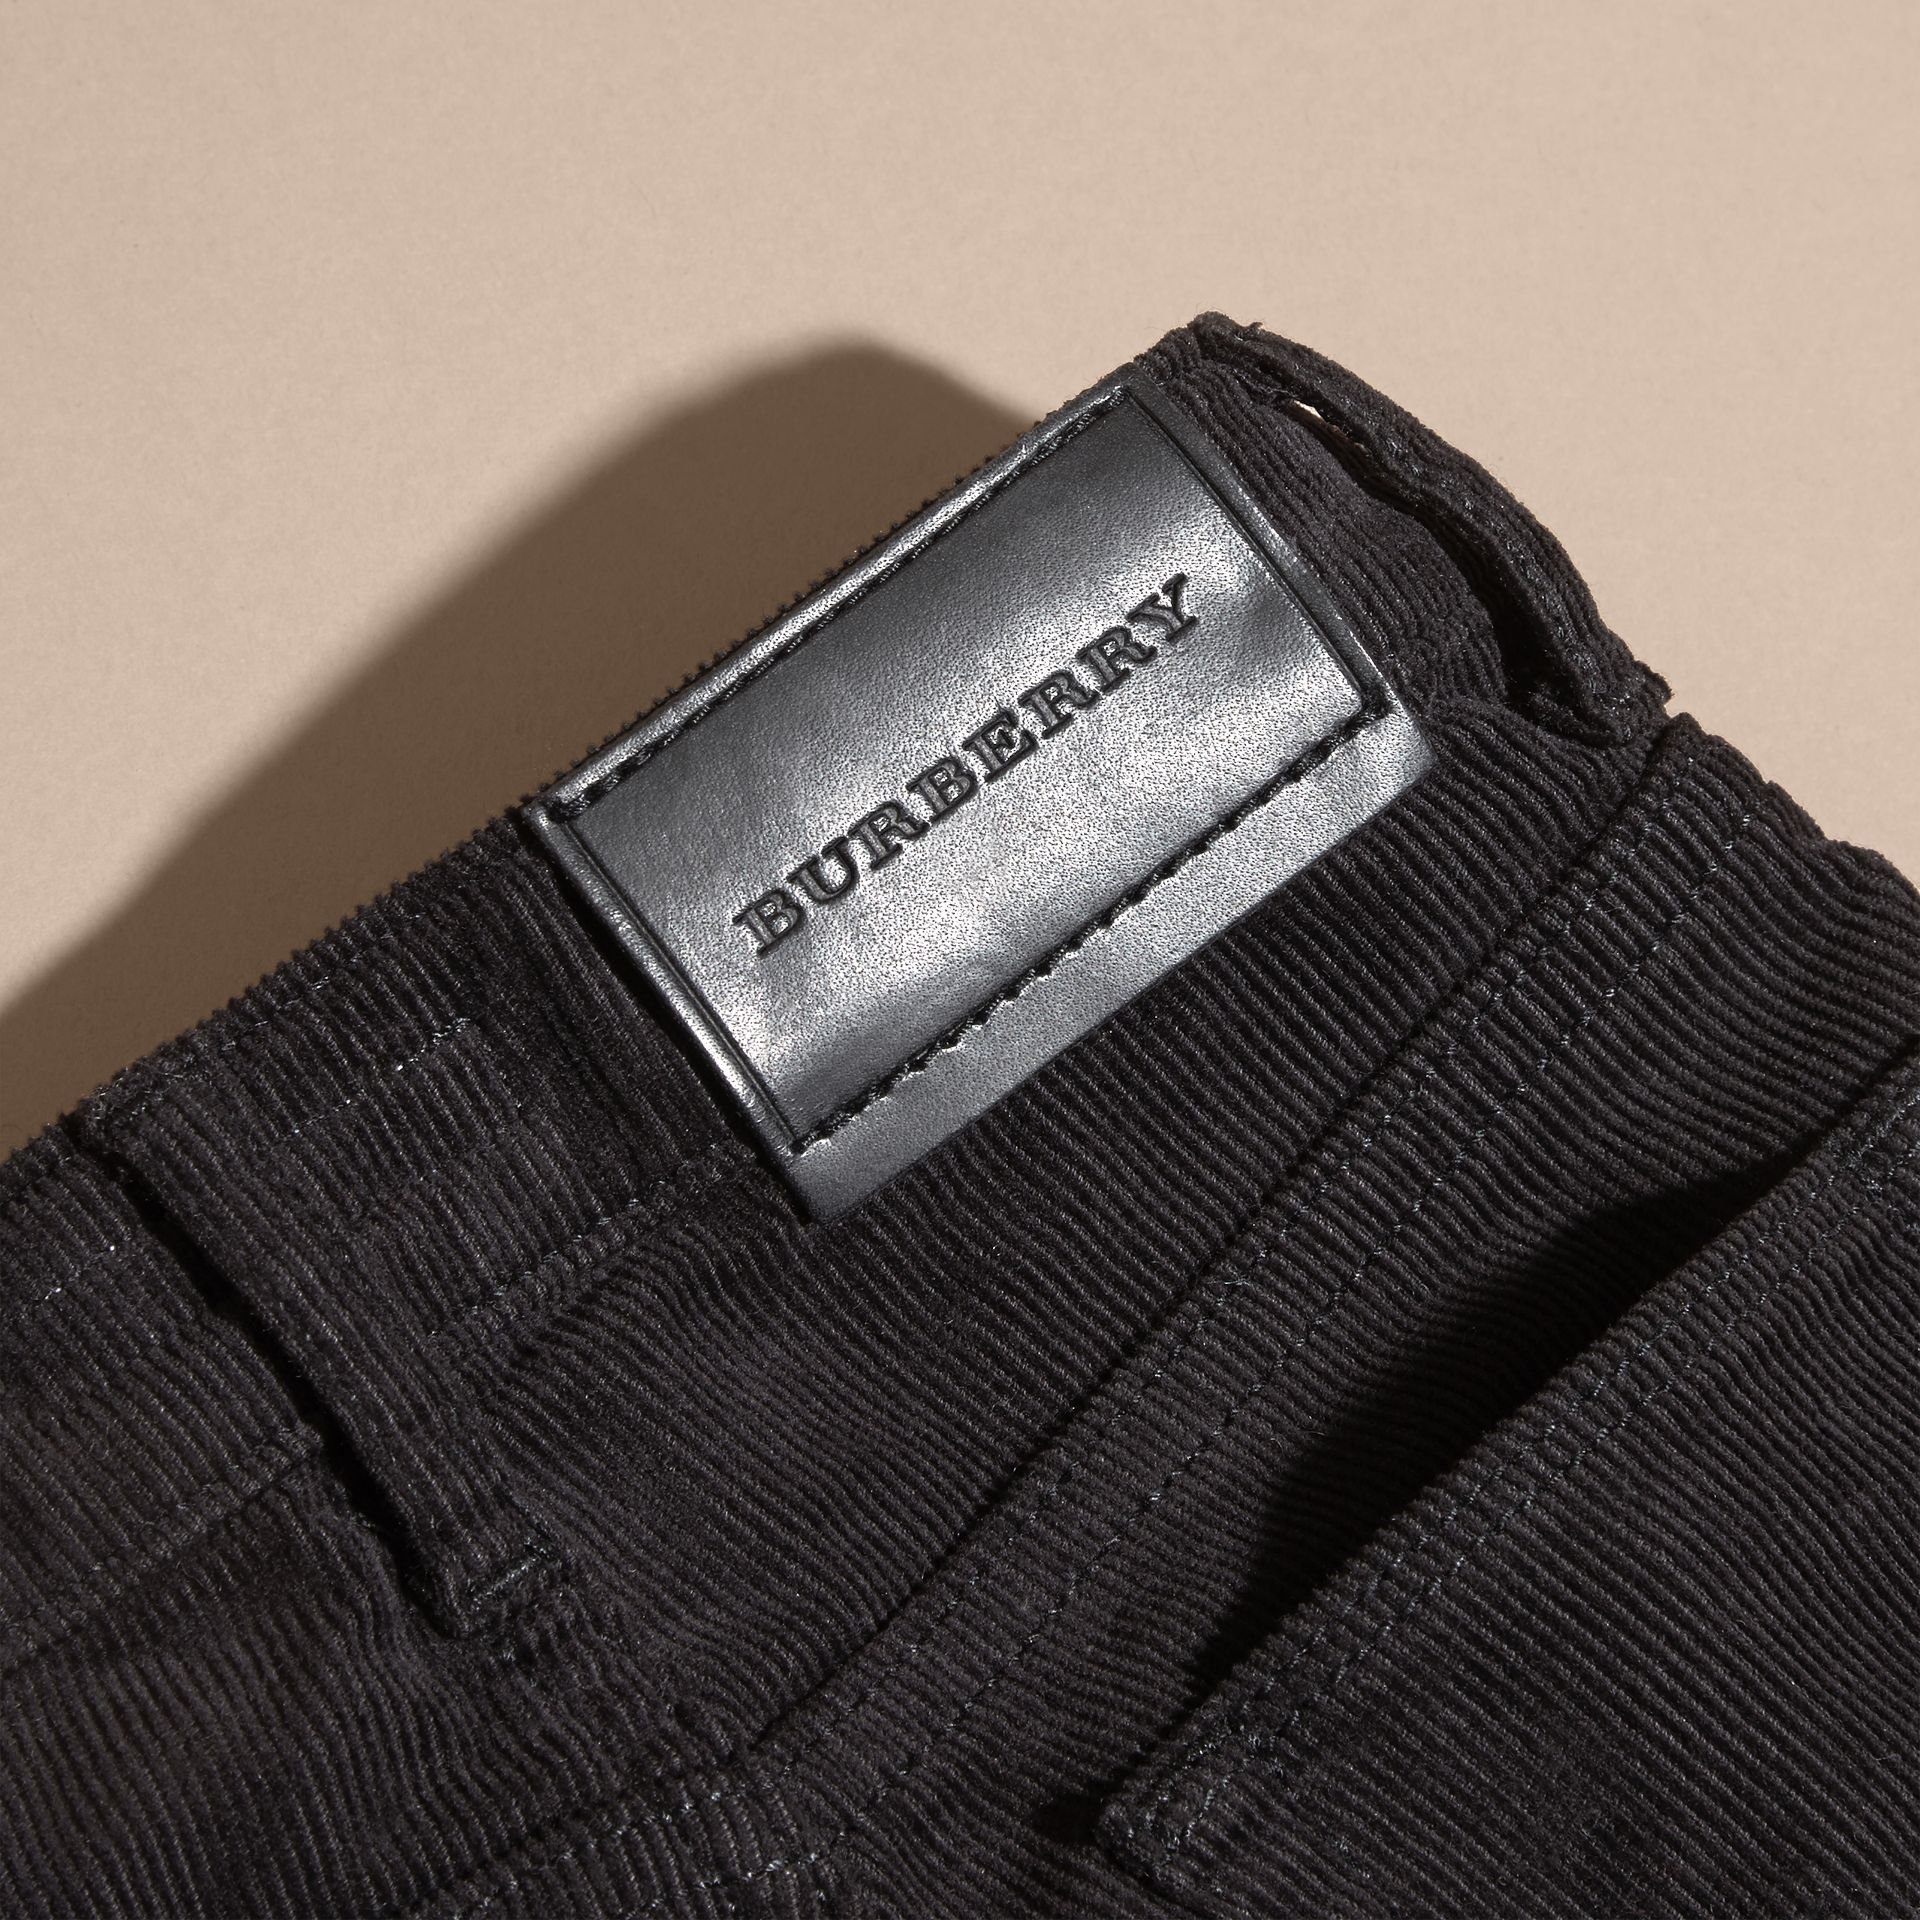 Stretch Corduroy Jeans in Black | Burberry - gallery image 1